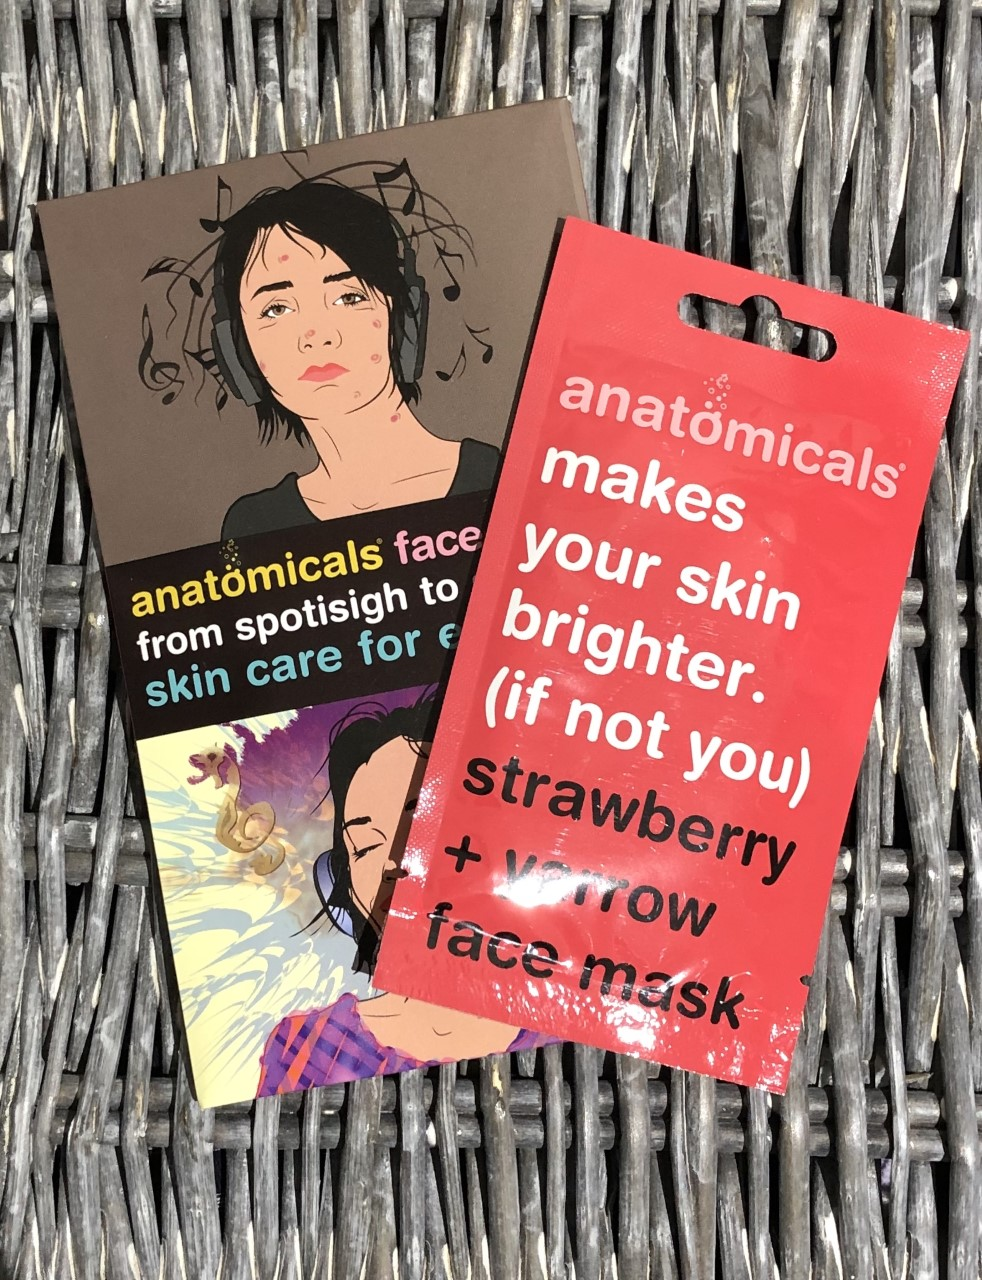 Anatomicals Makes Your Skin Brighter. (If not you) Strawberry & Yarrow Face Mask Review graphic